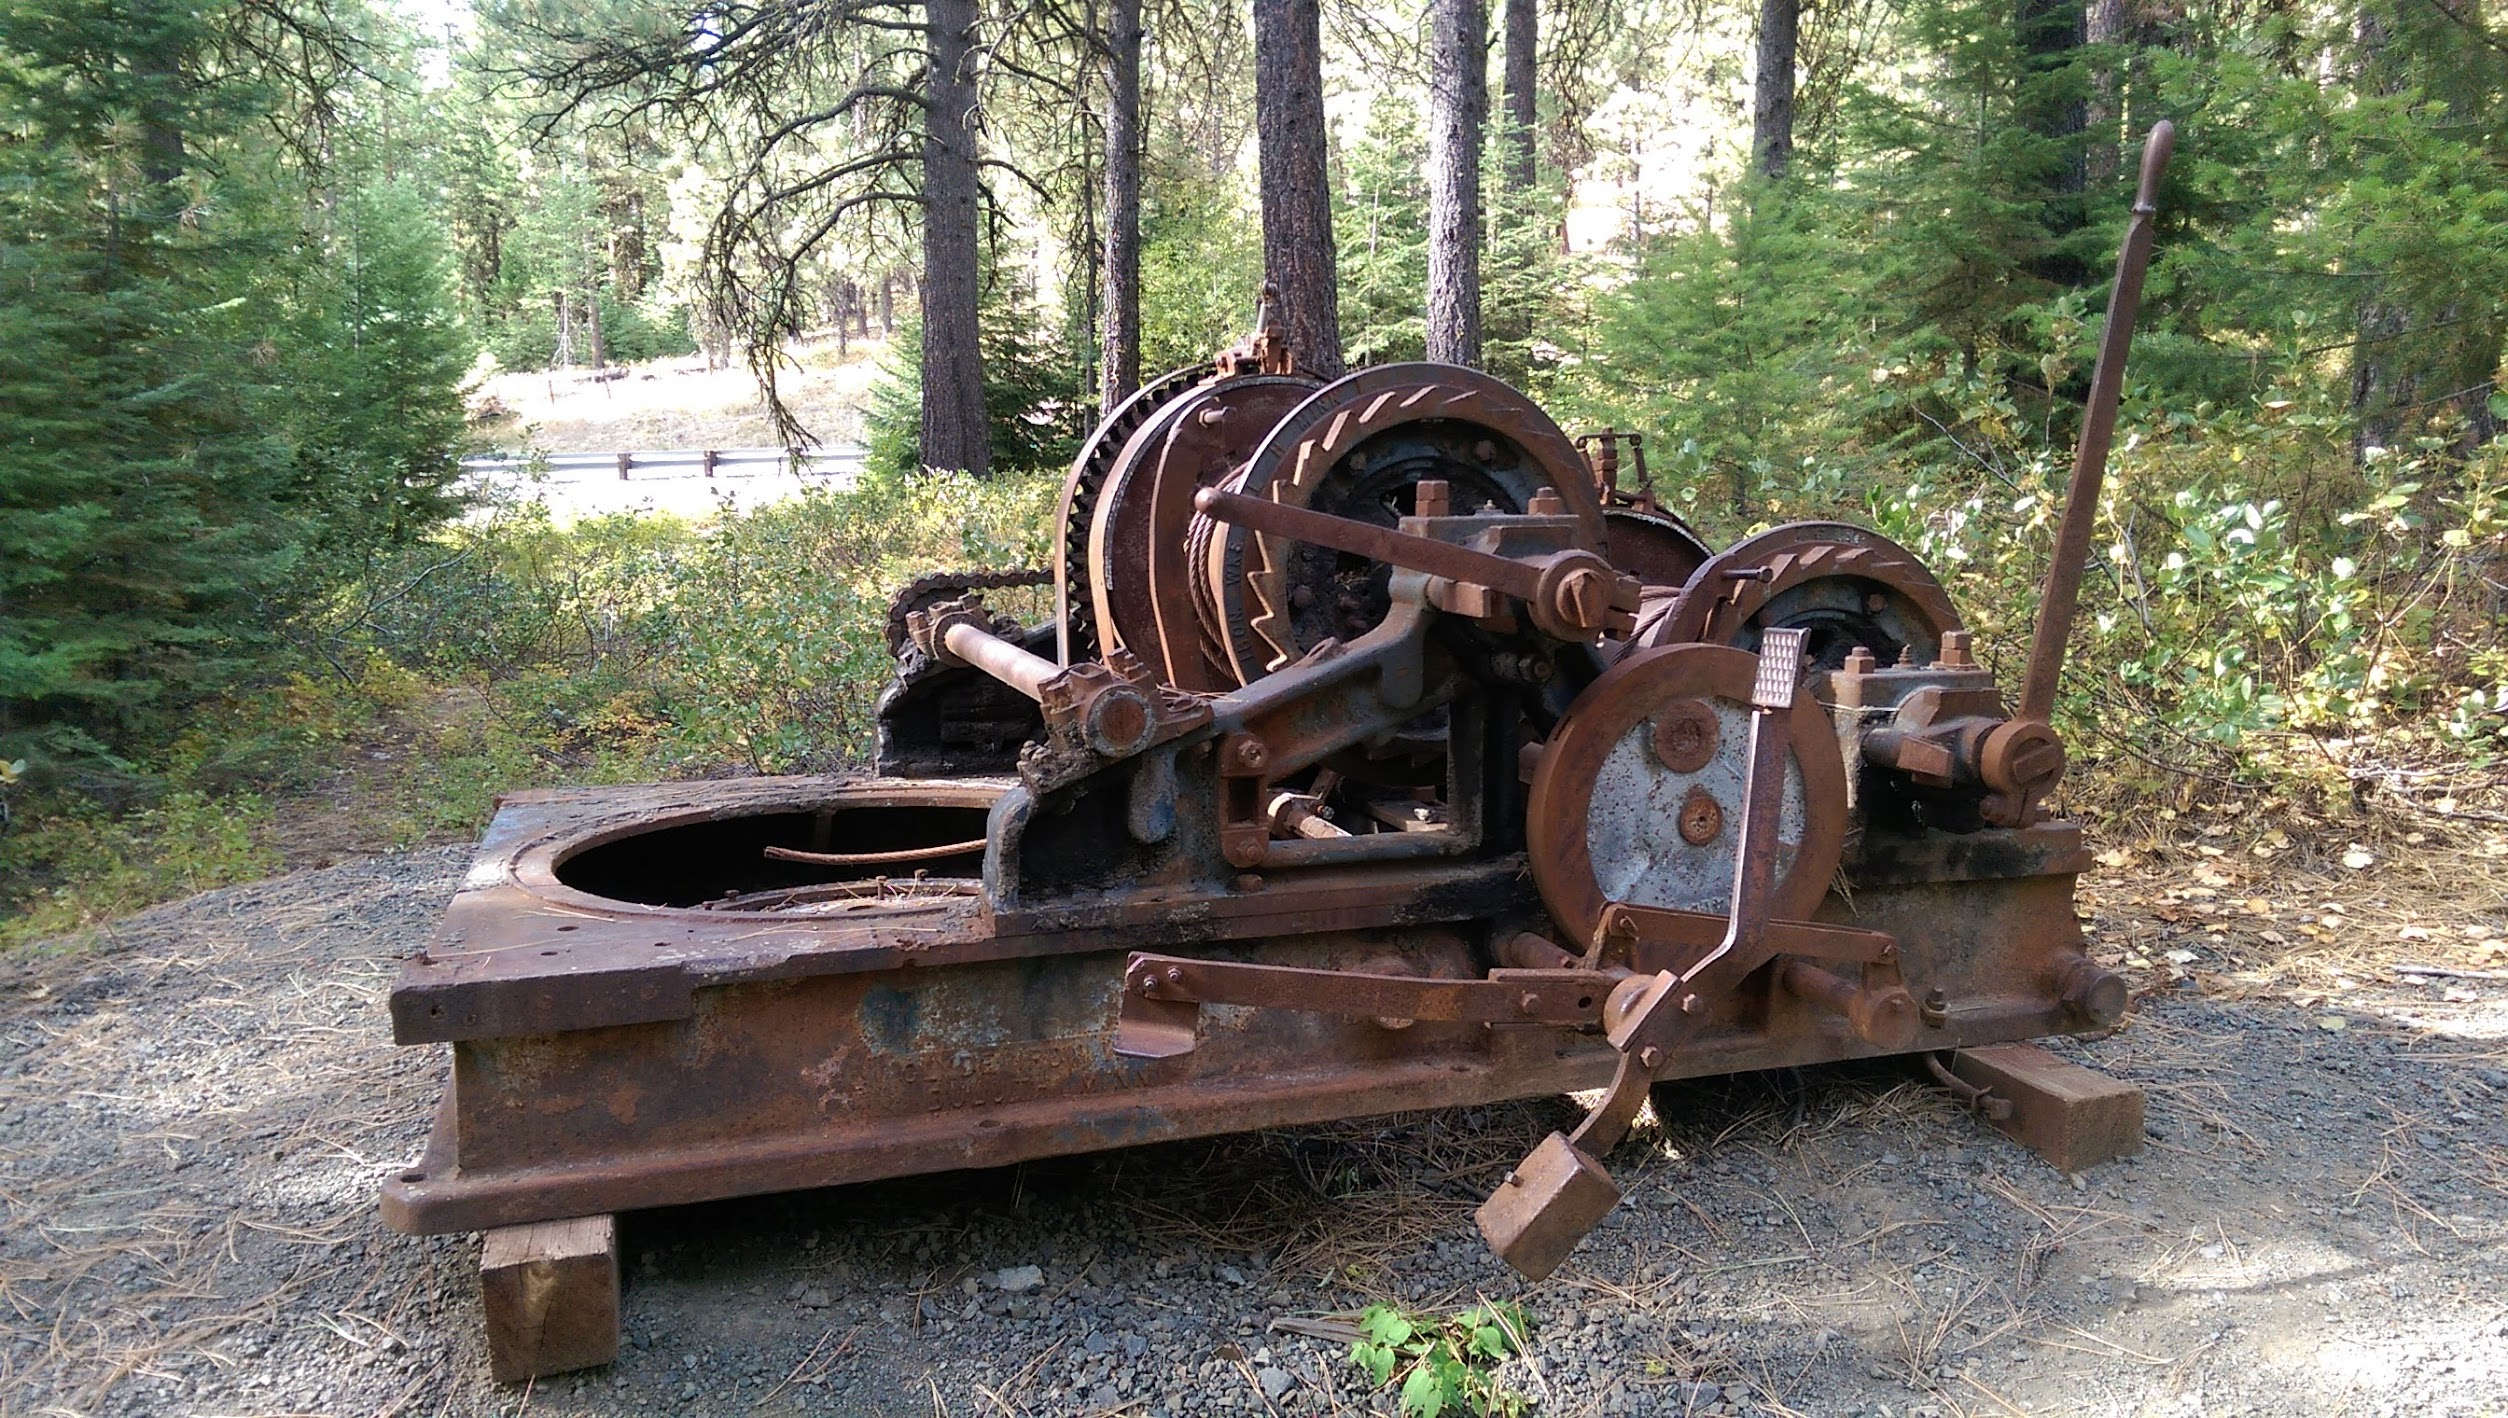 Machinery in the Woods